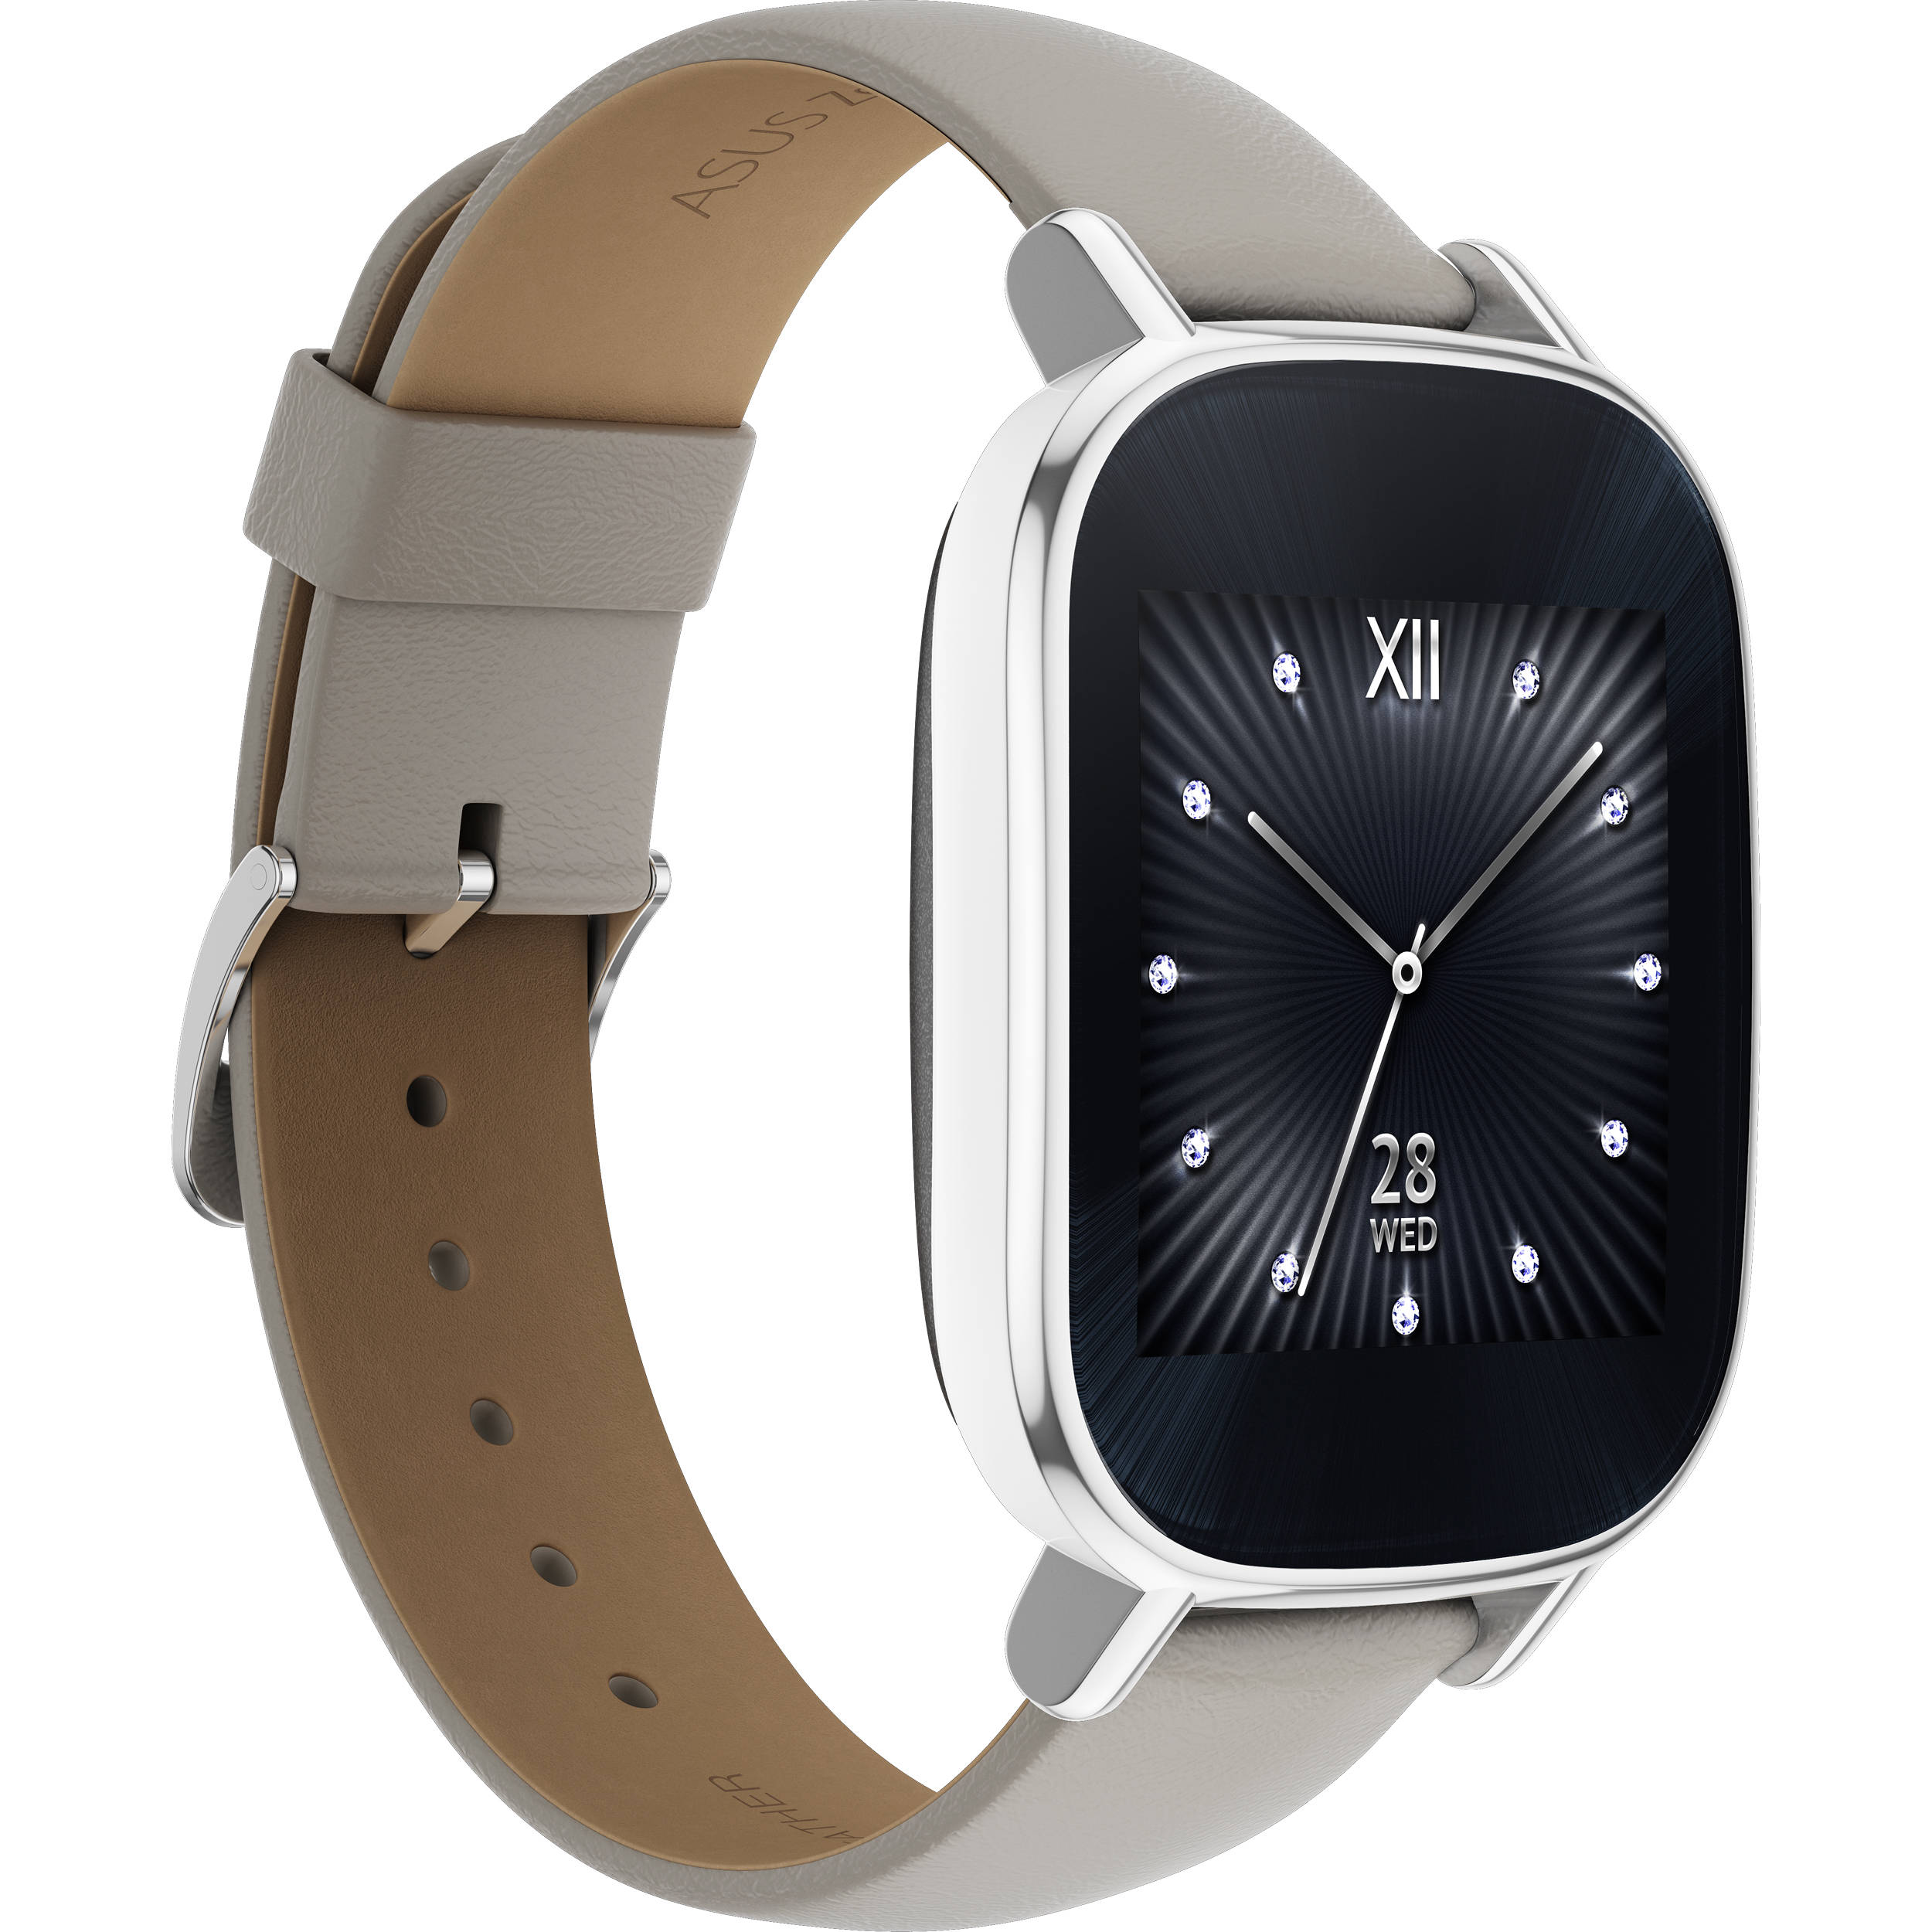 ASUS ZenWatch 2 Android Wear Smartwatch WI502Q-SL-BD B&H Photo